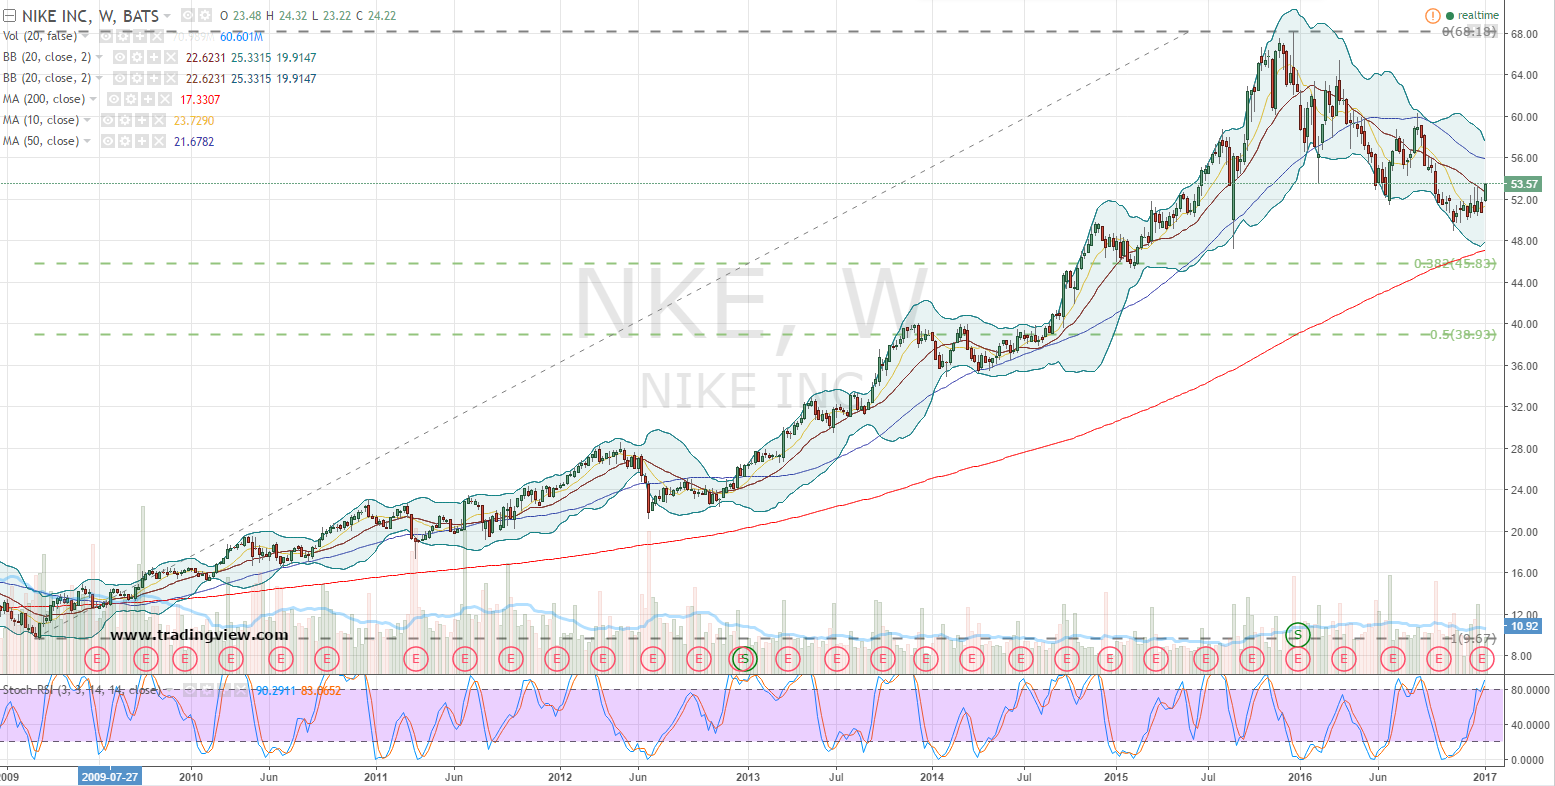 Retail Stocks to Mix and Match: Nike (NKE)